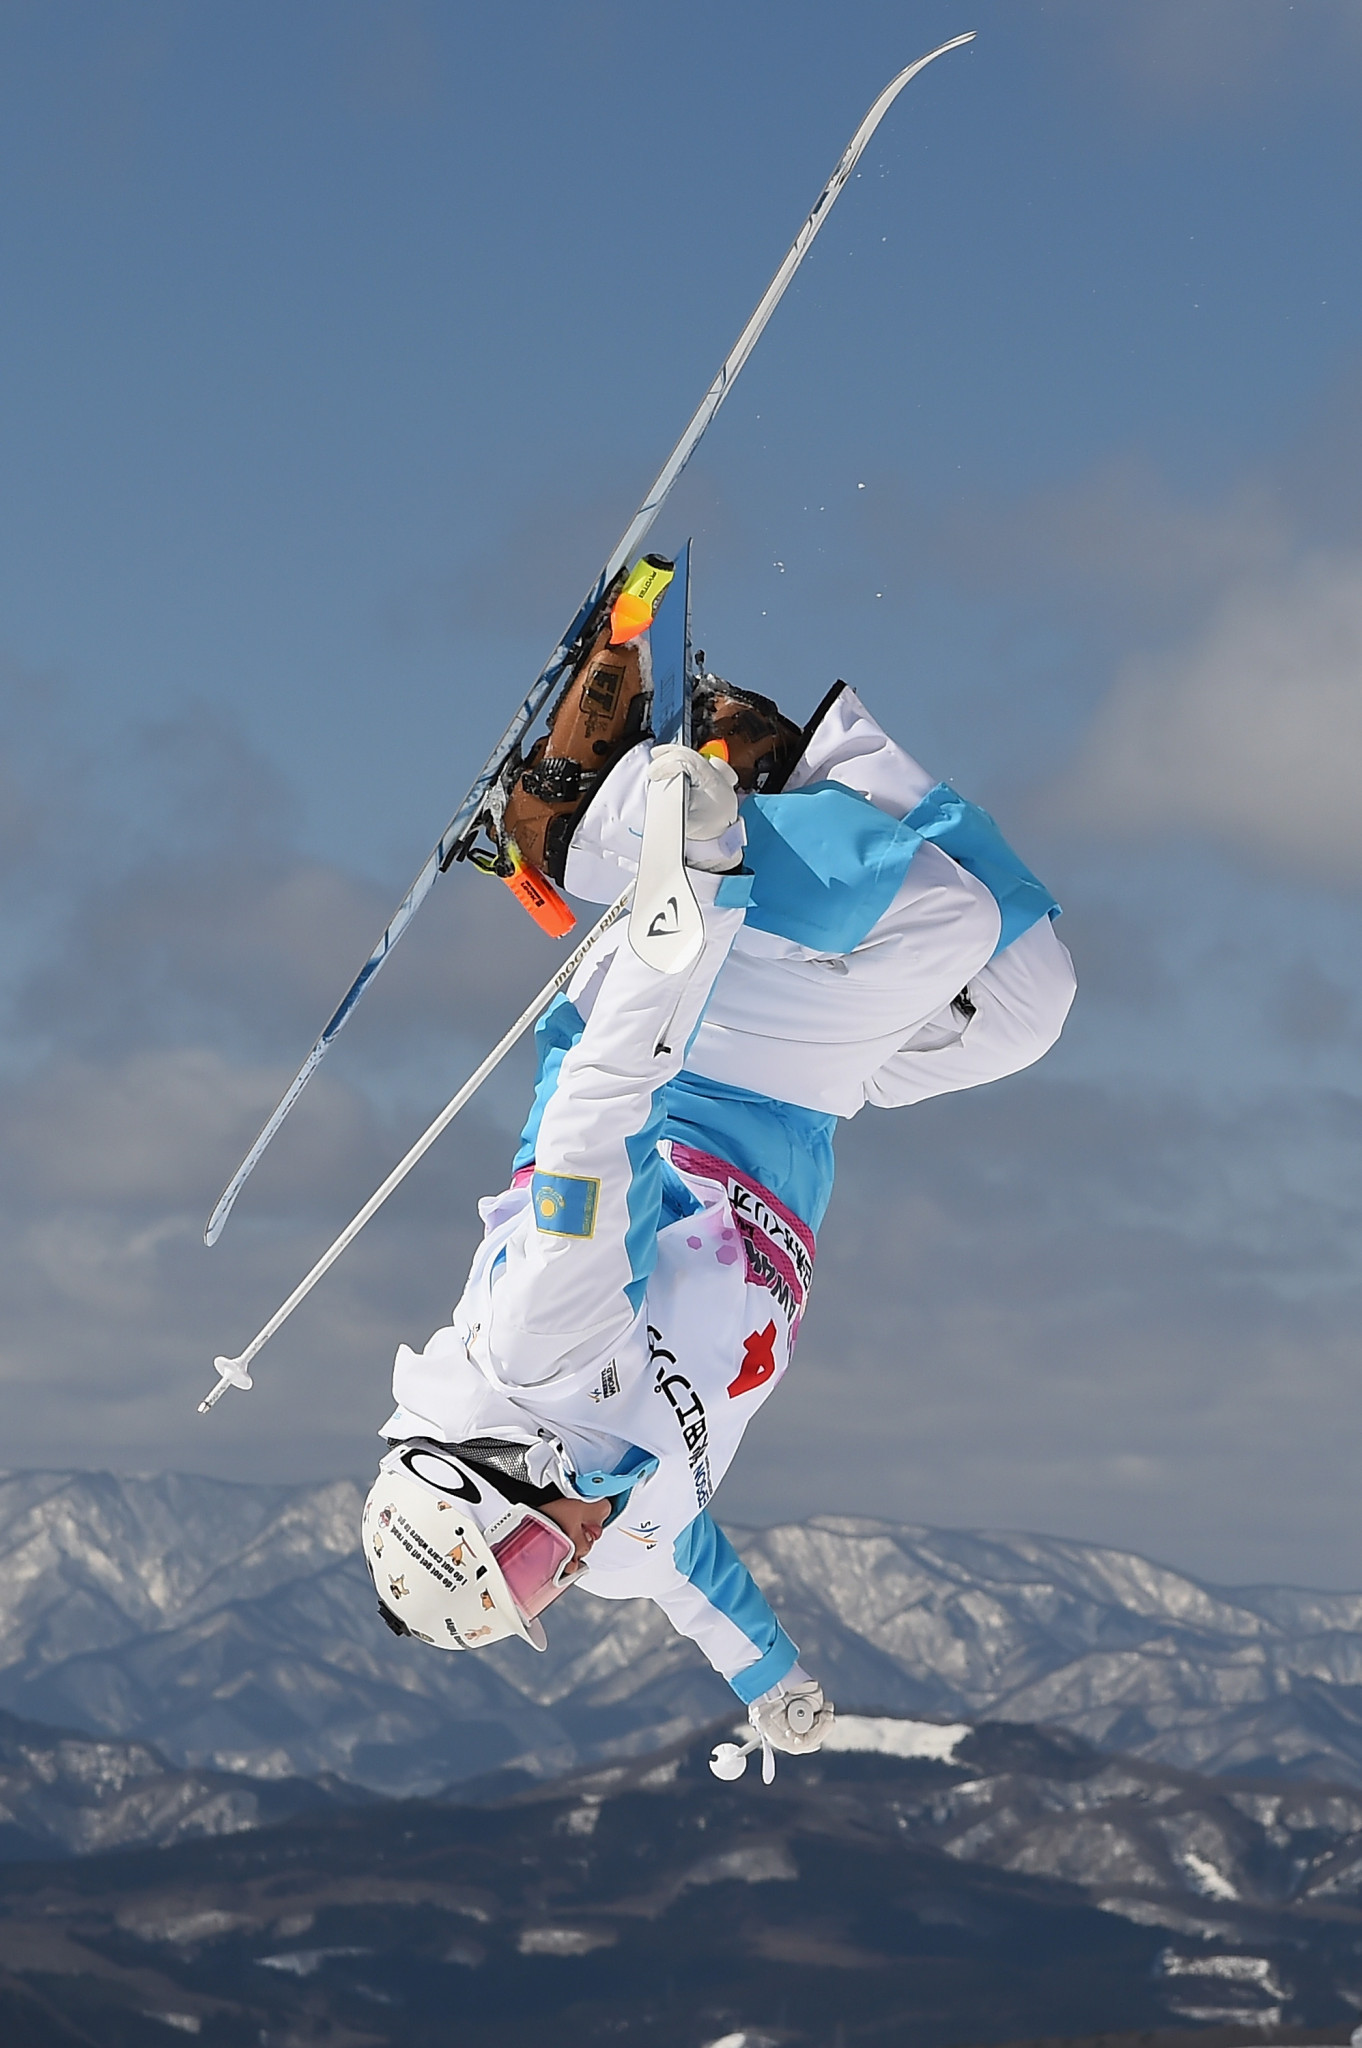 Home favourite Galysheva claims win at FIS Moguls World Cup in Kazakhstan